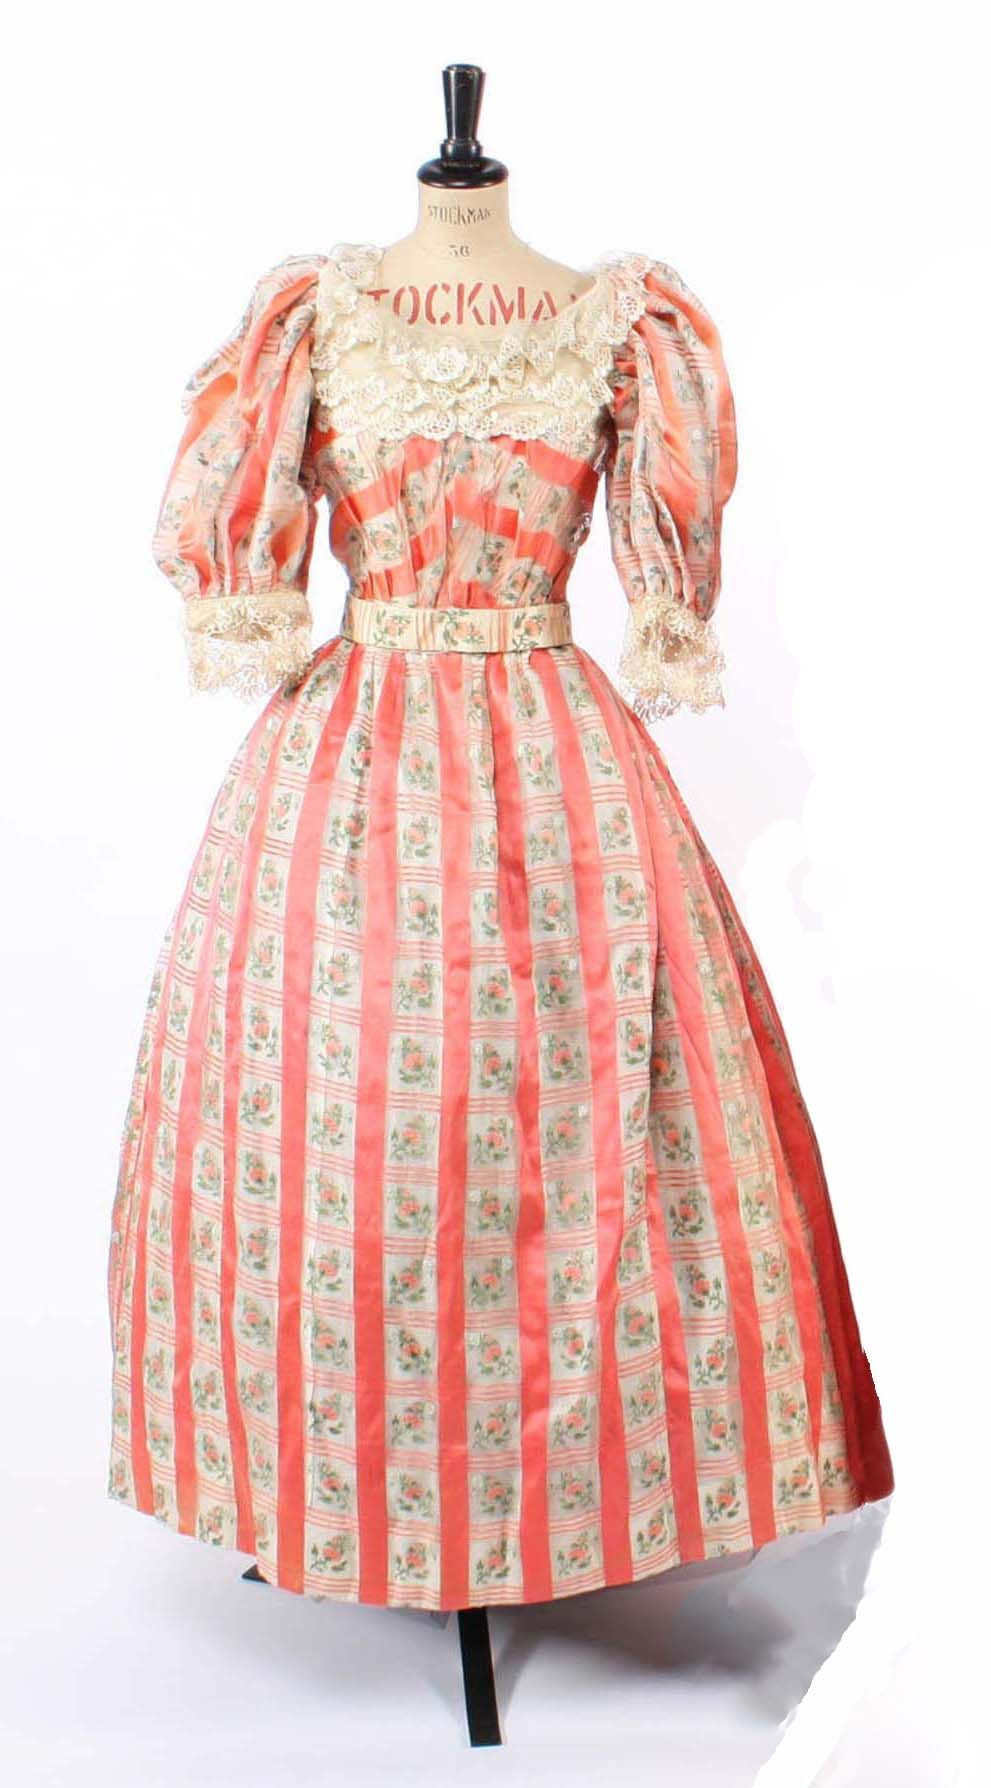 1850s Evening Dress Of Cream Chiffon With Salmon Pink Satin And Woven Floral Stripes With Puffed Sleev Victorian Dress Shop Historical Dresses Victorian Dress [ 1788 x 991 Pixel ]